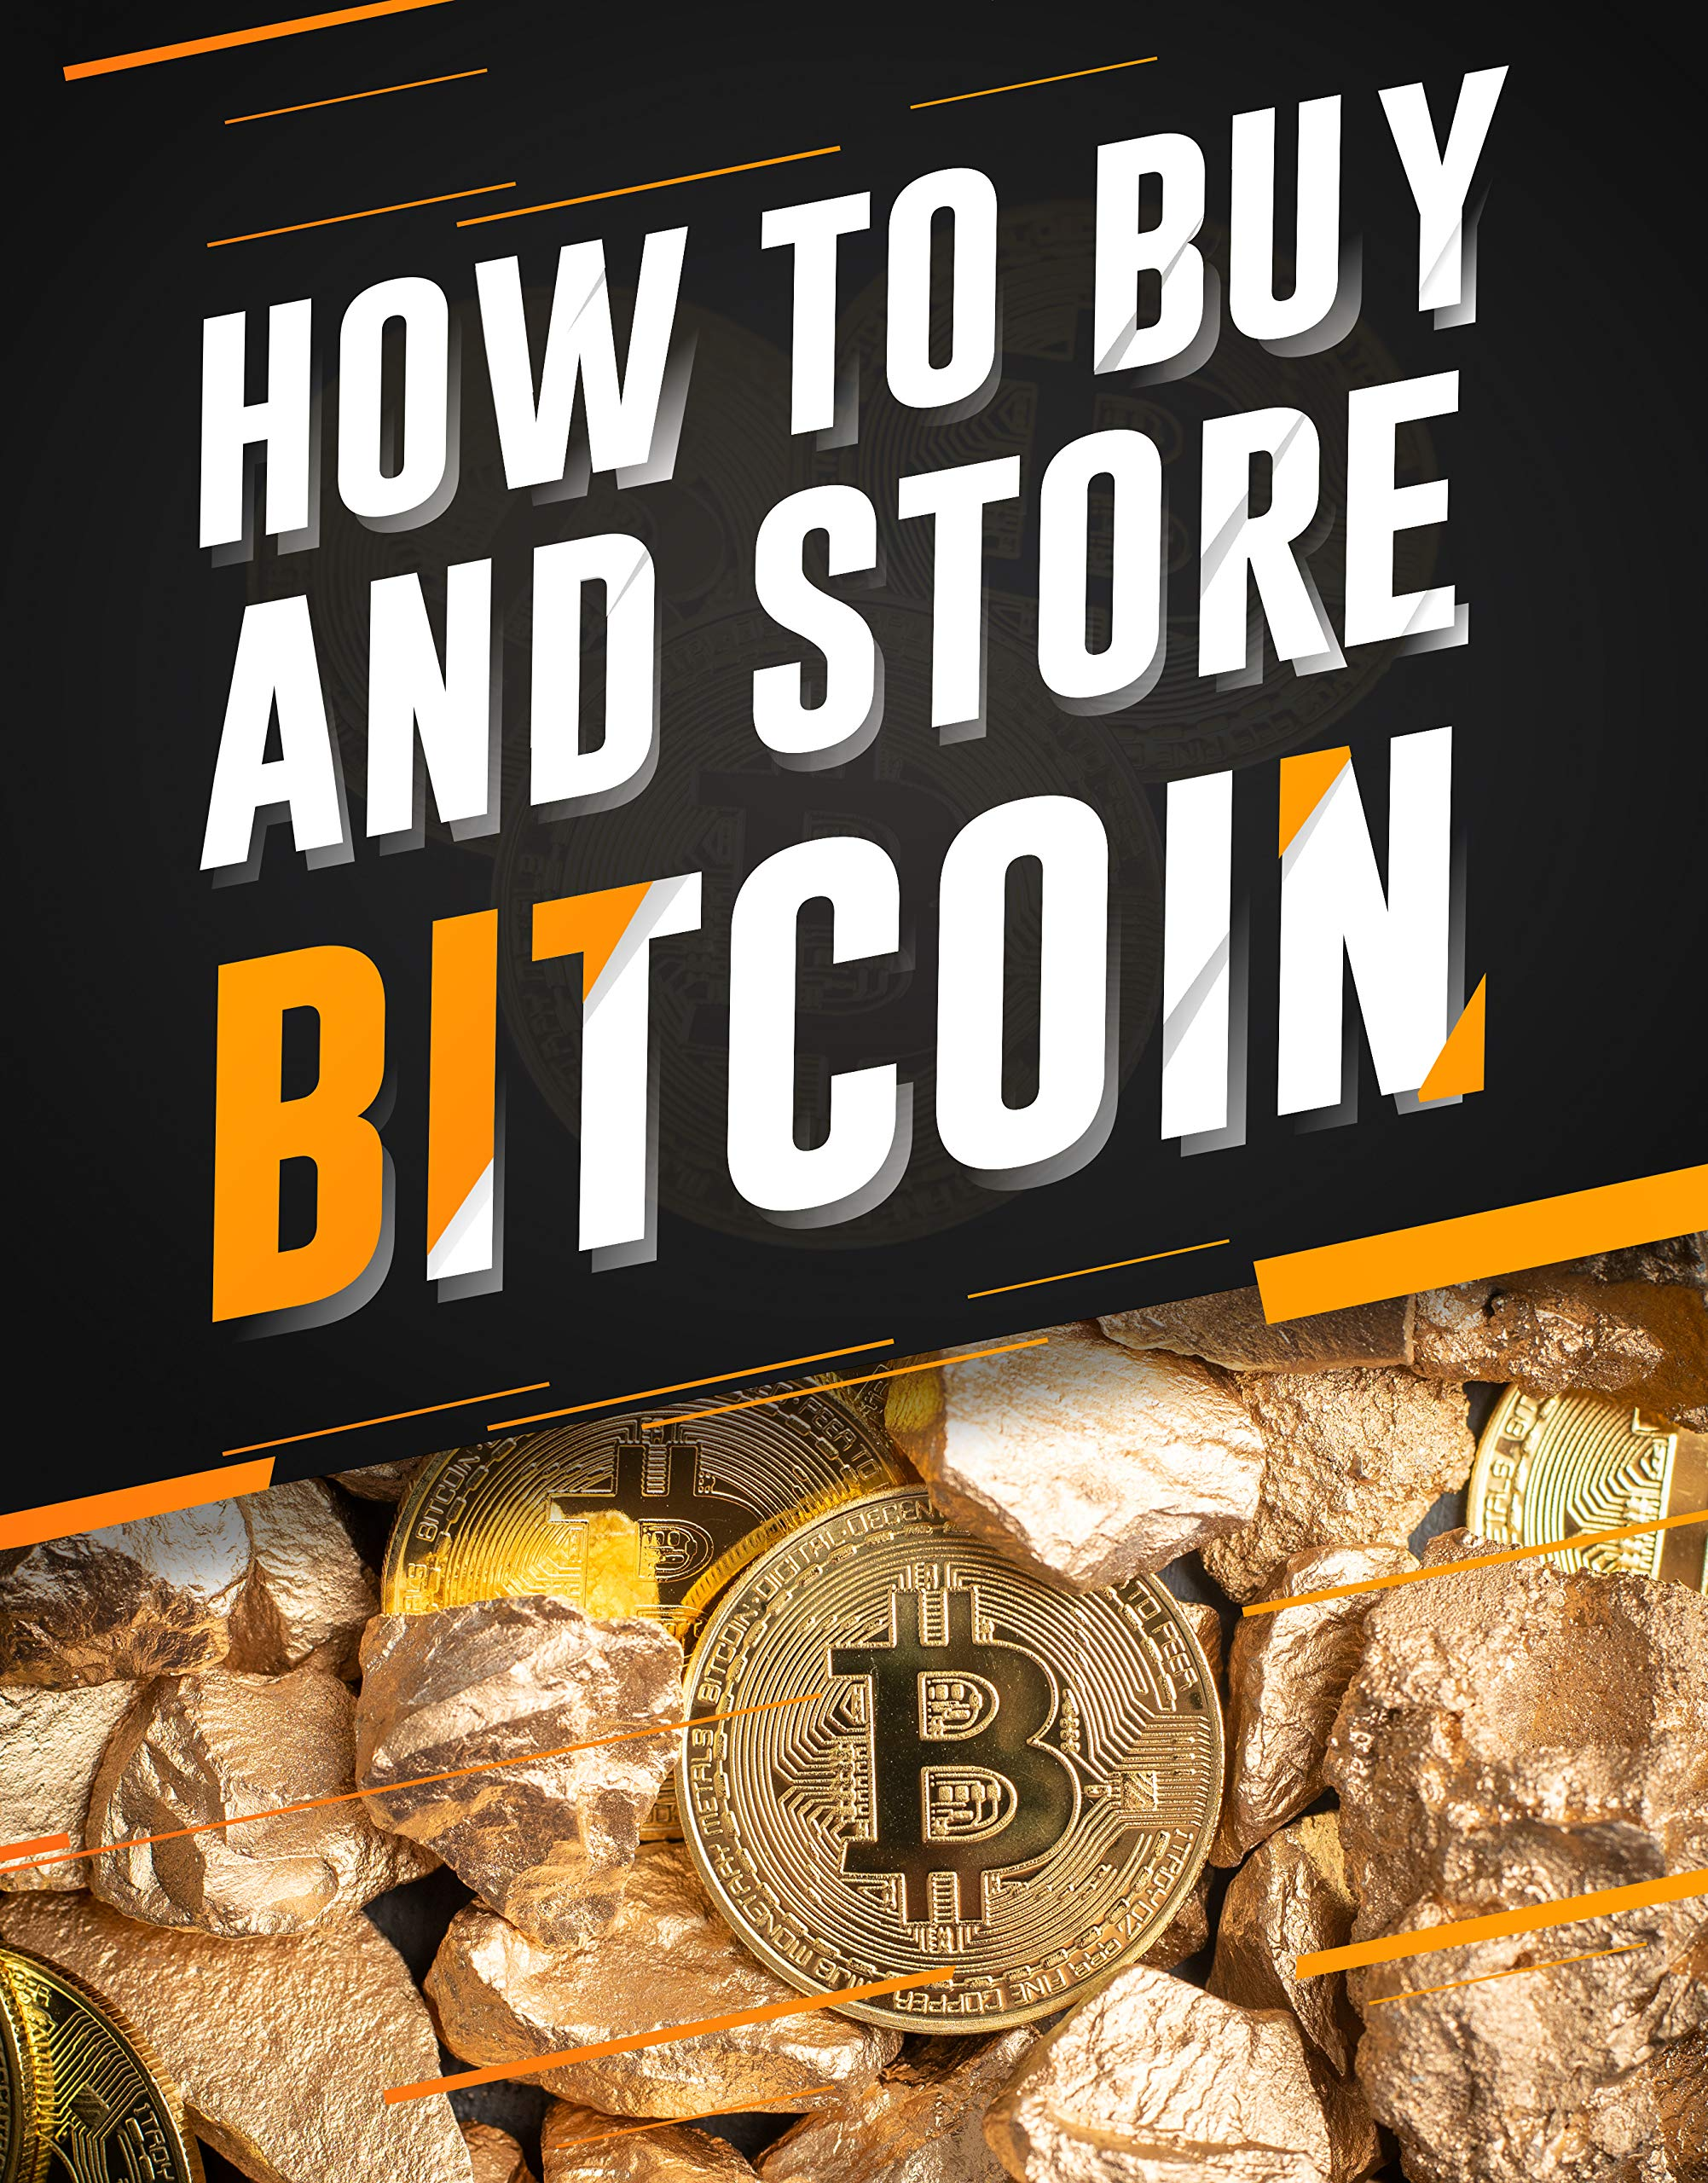 sell wow gold for bitcoins for dummies